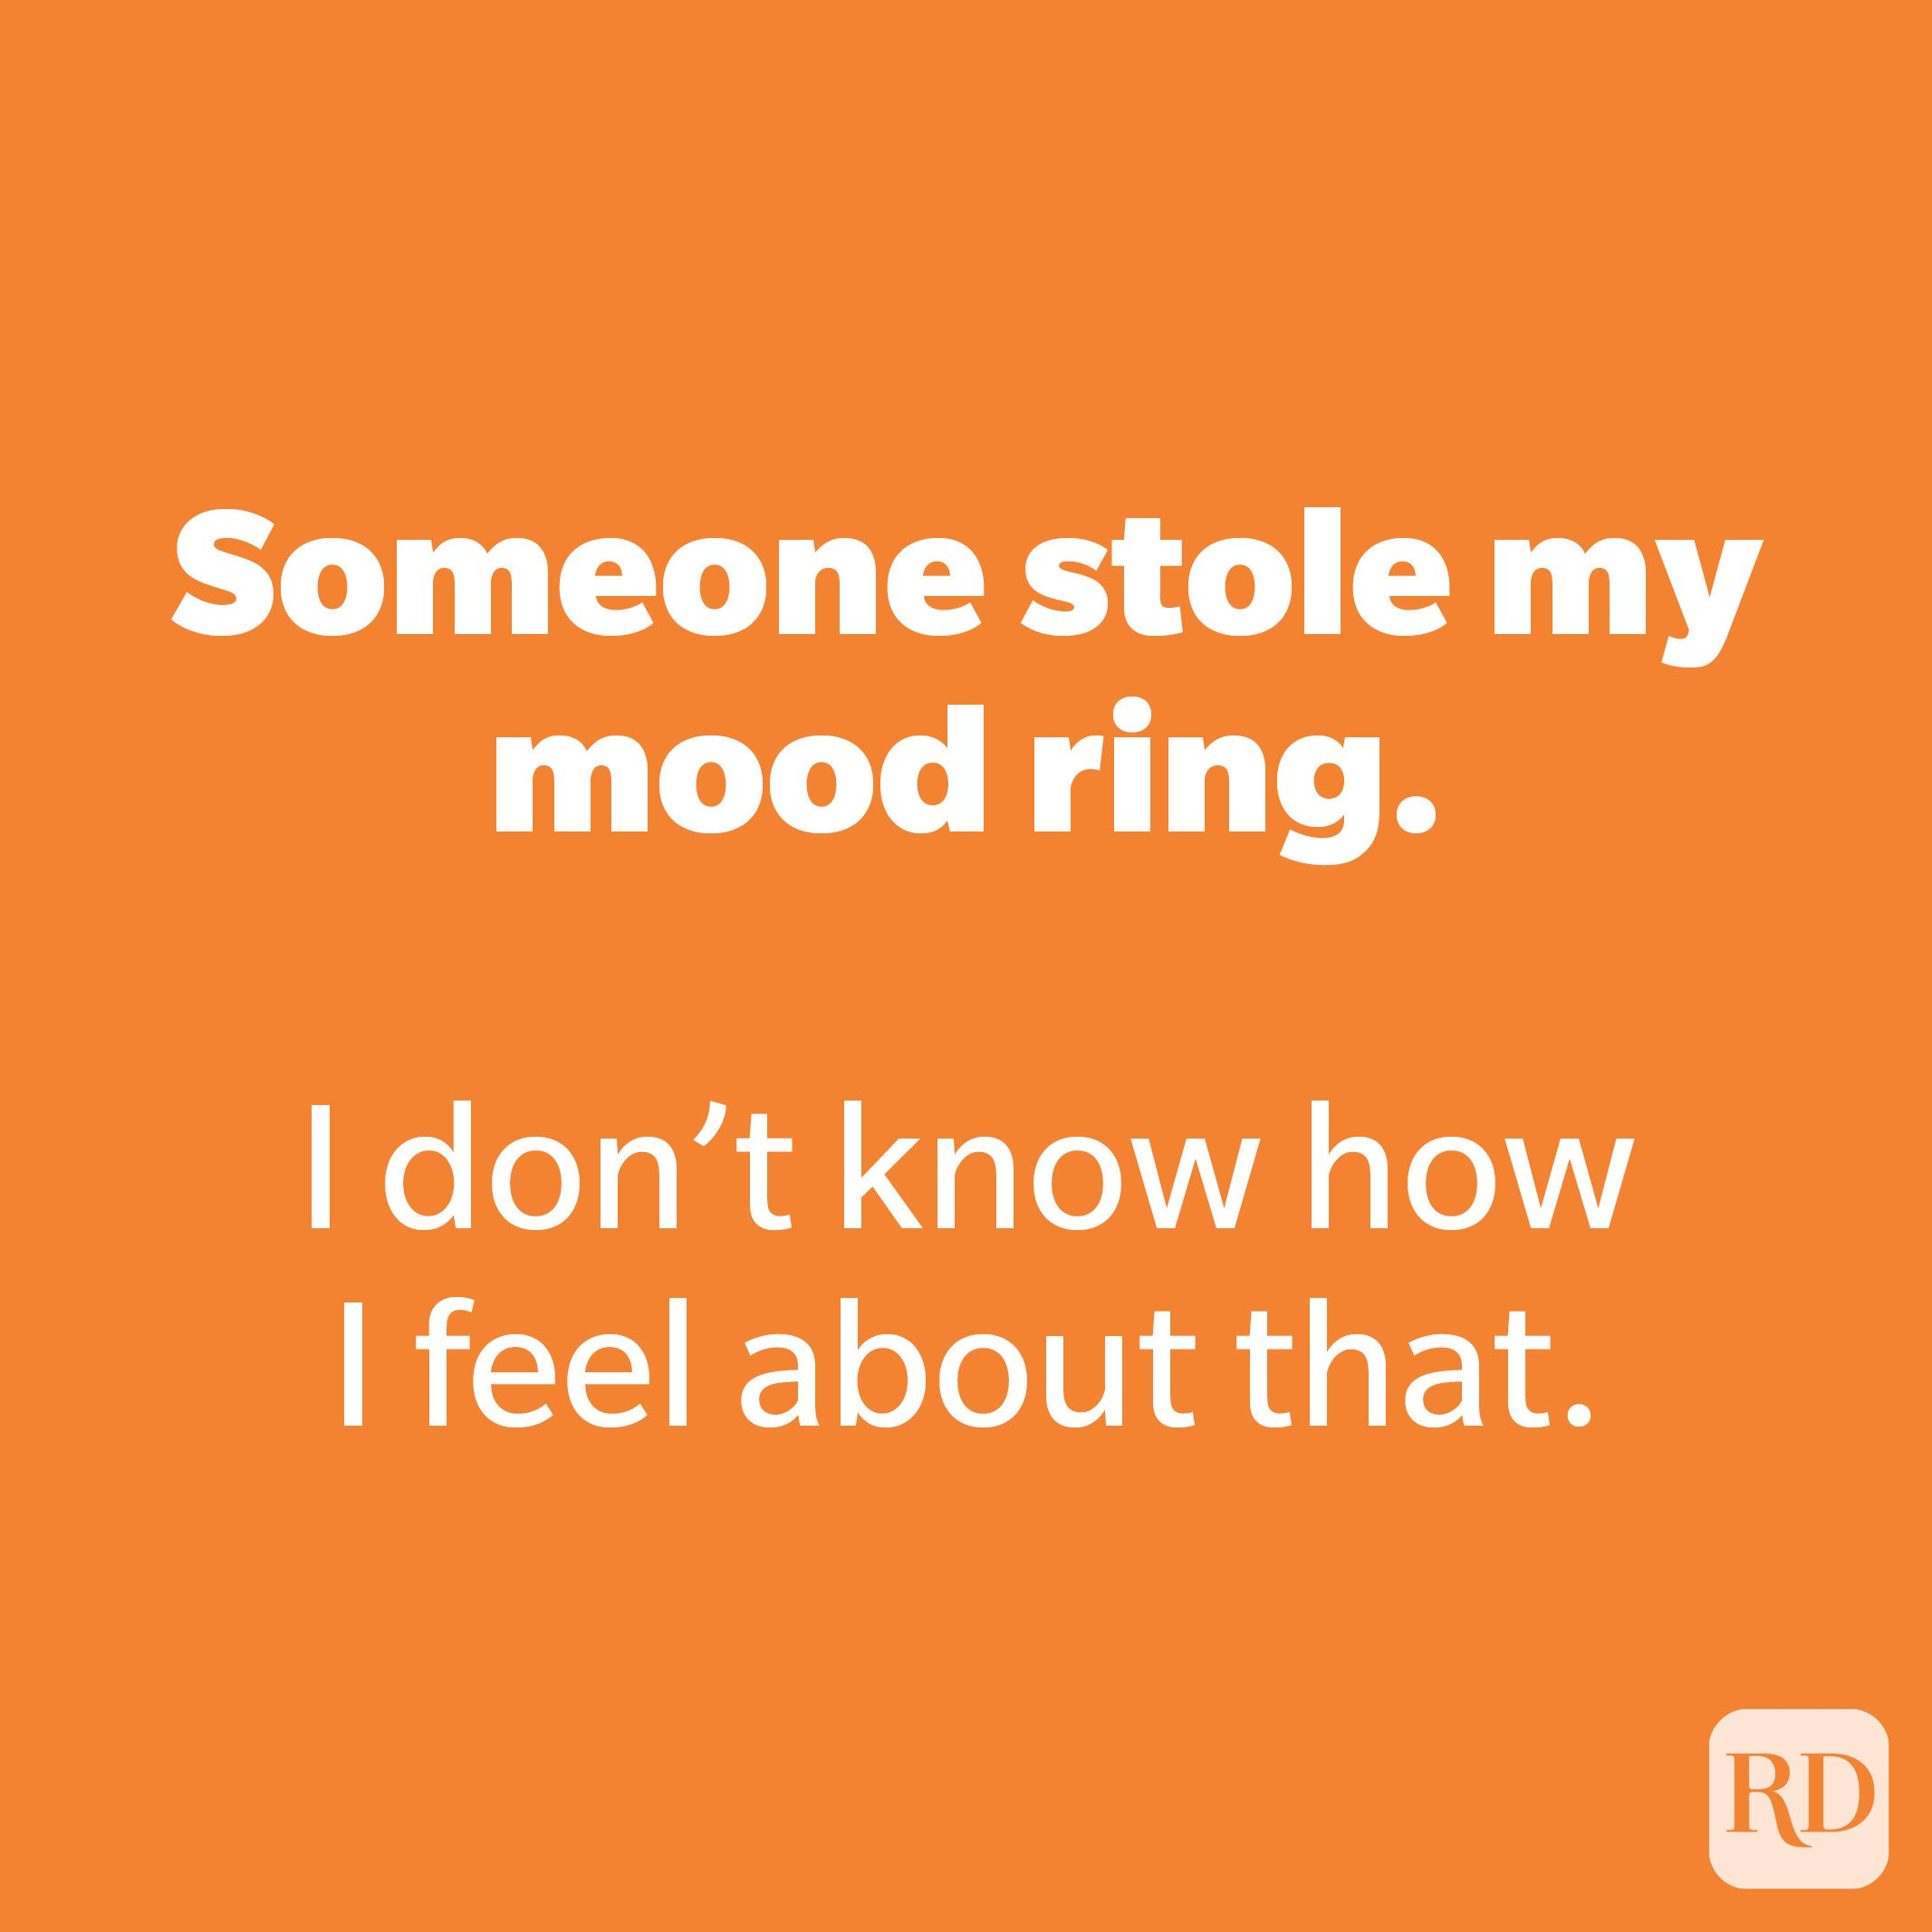 Someone stole my mood ring.